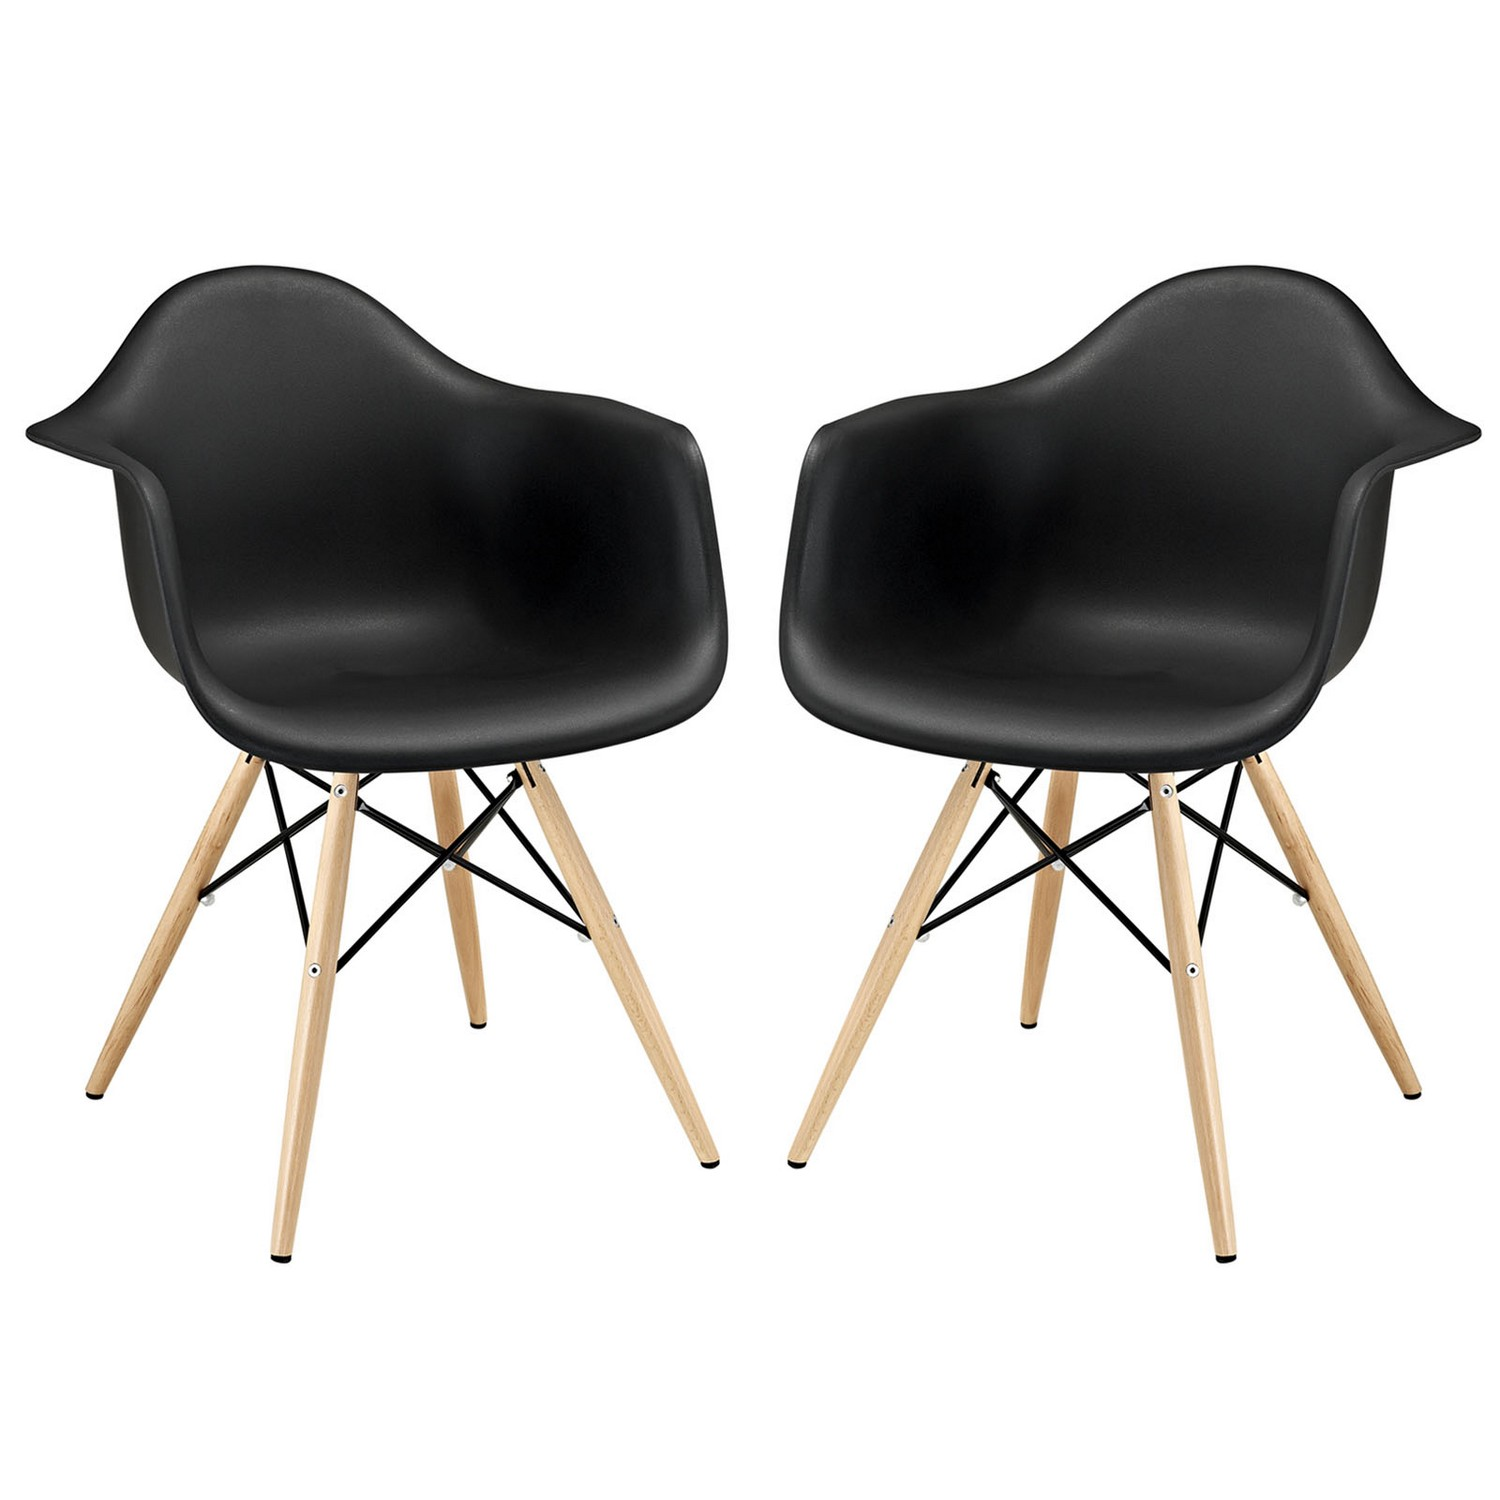 Modway Pyramid Dining Armchair Set of 2 - Black